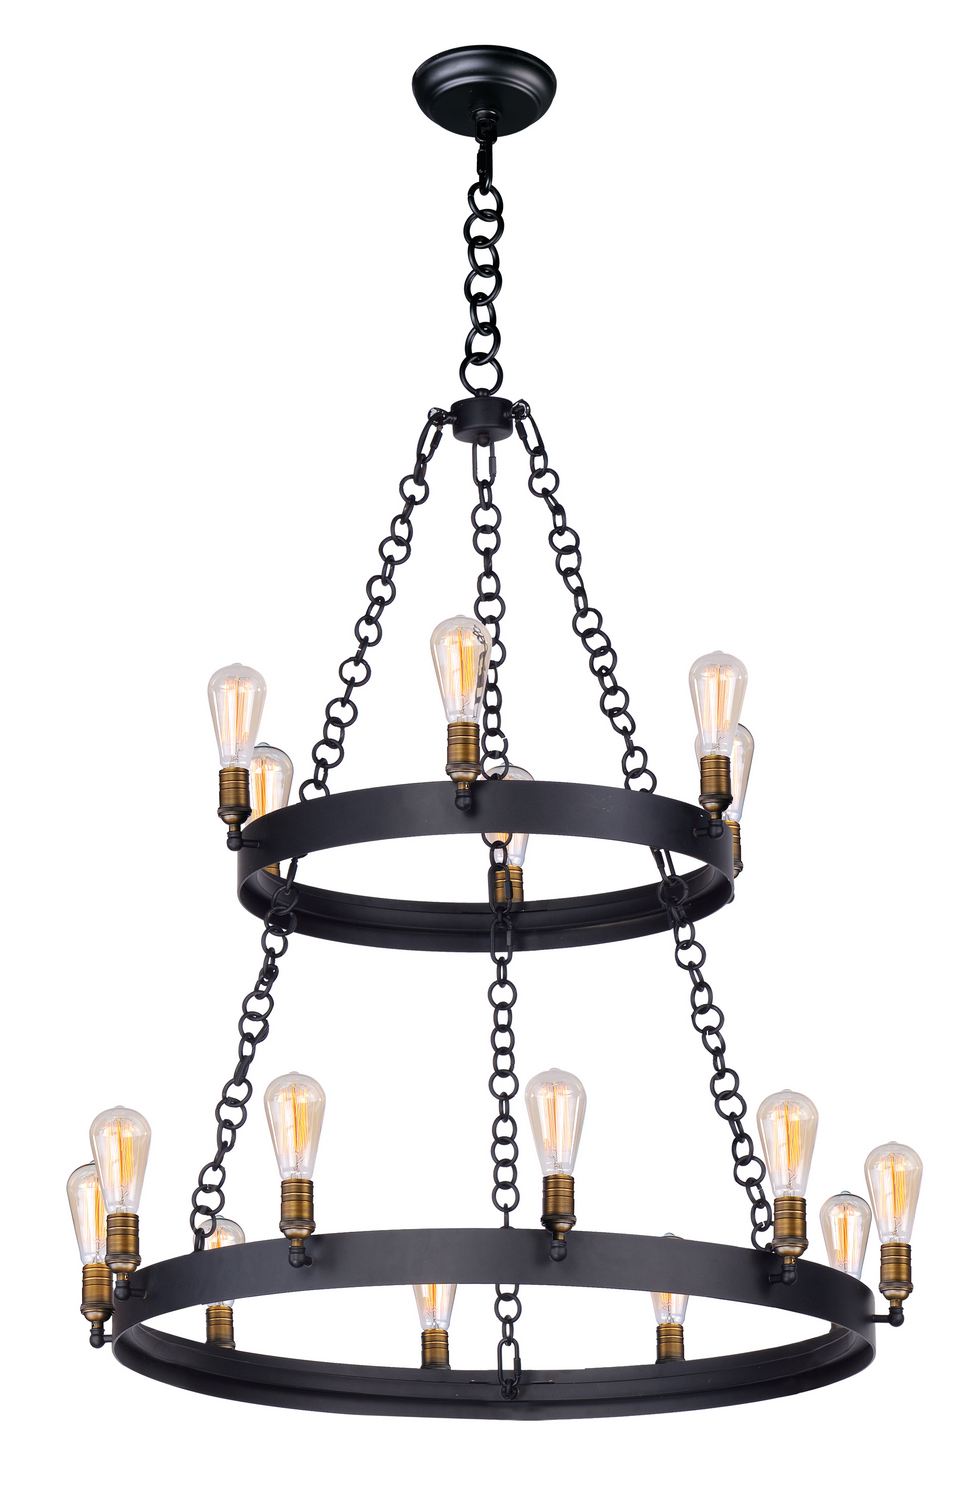 16 Light Chandelier from the Noble collection by Maxim 26277BKNAB